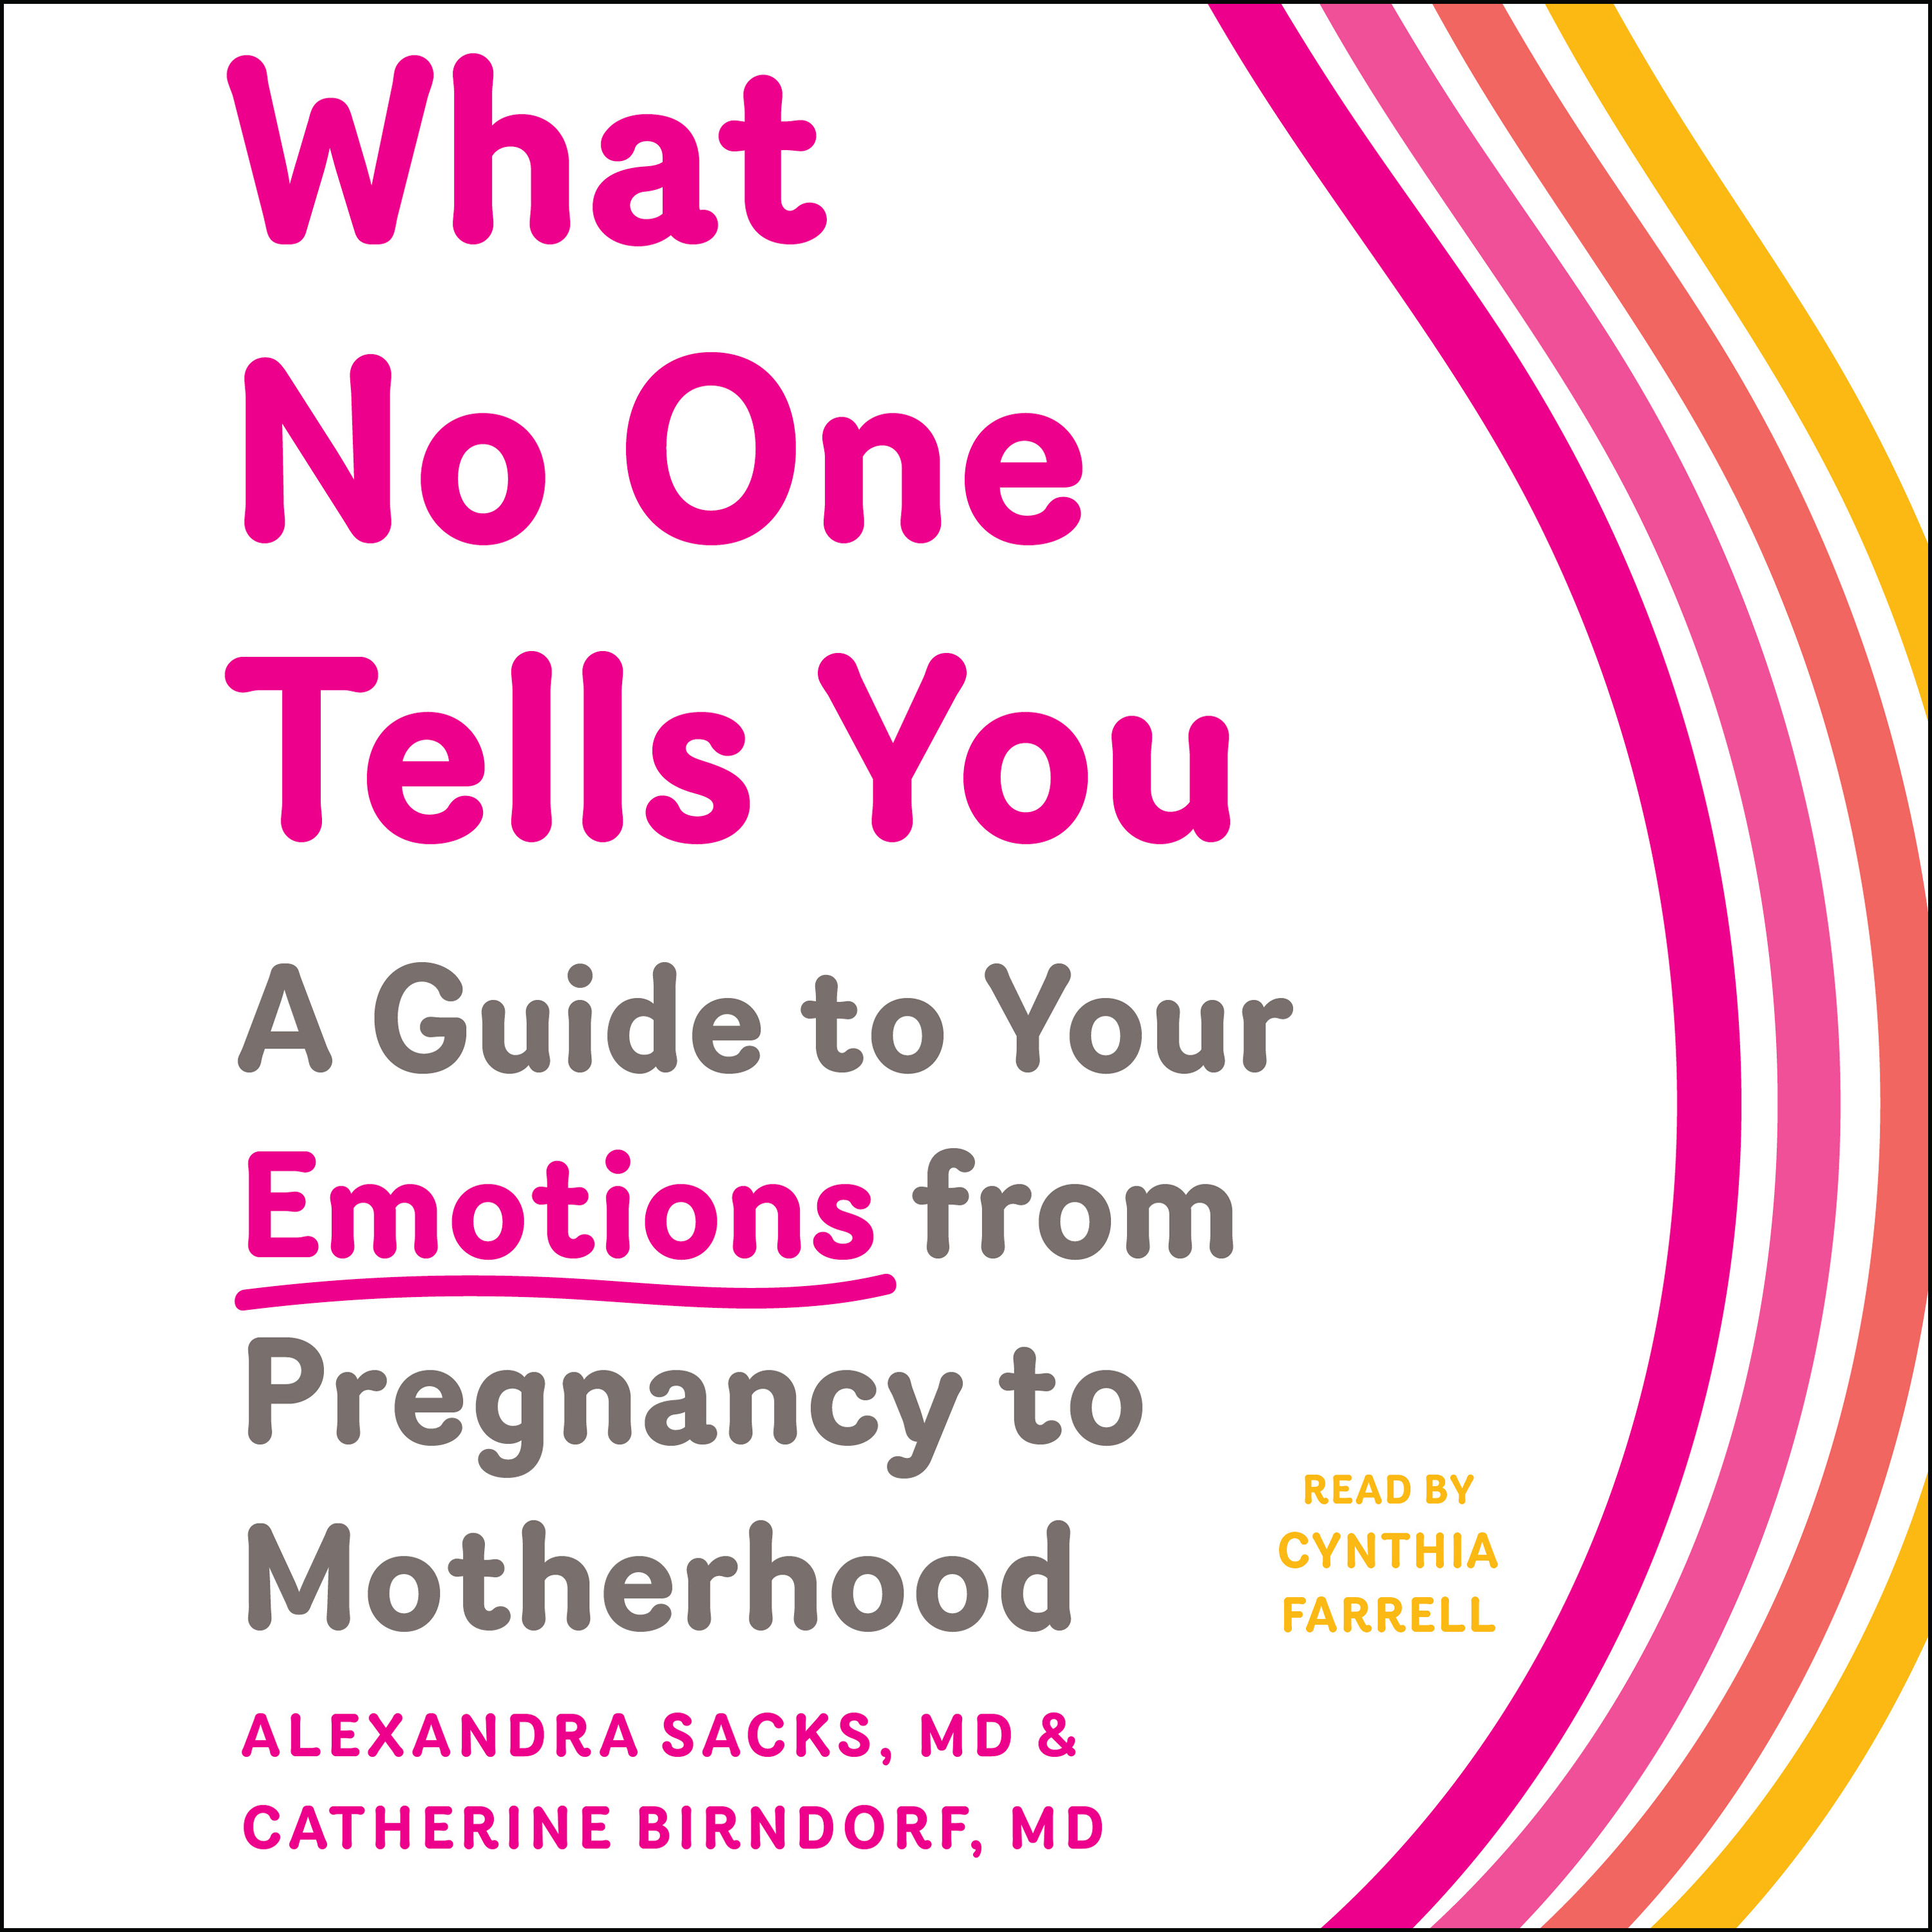 What No One Tells You Audiobook by Alexandra Sacks